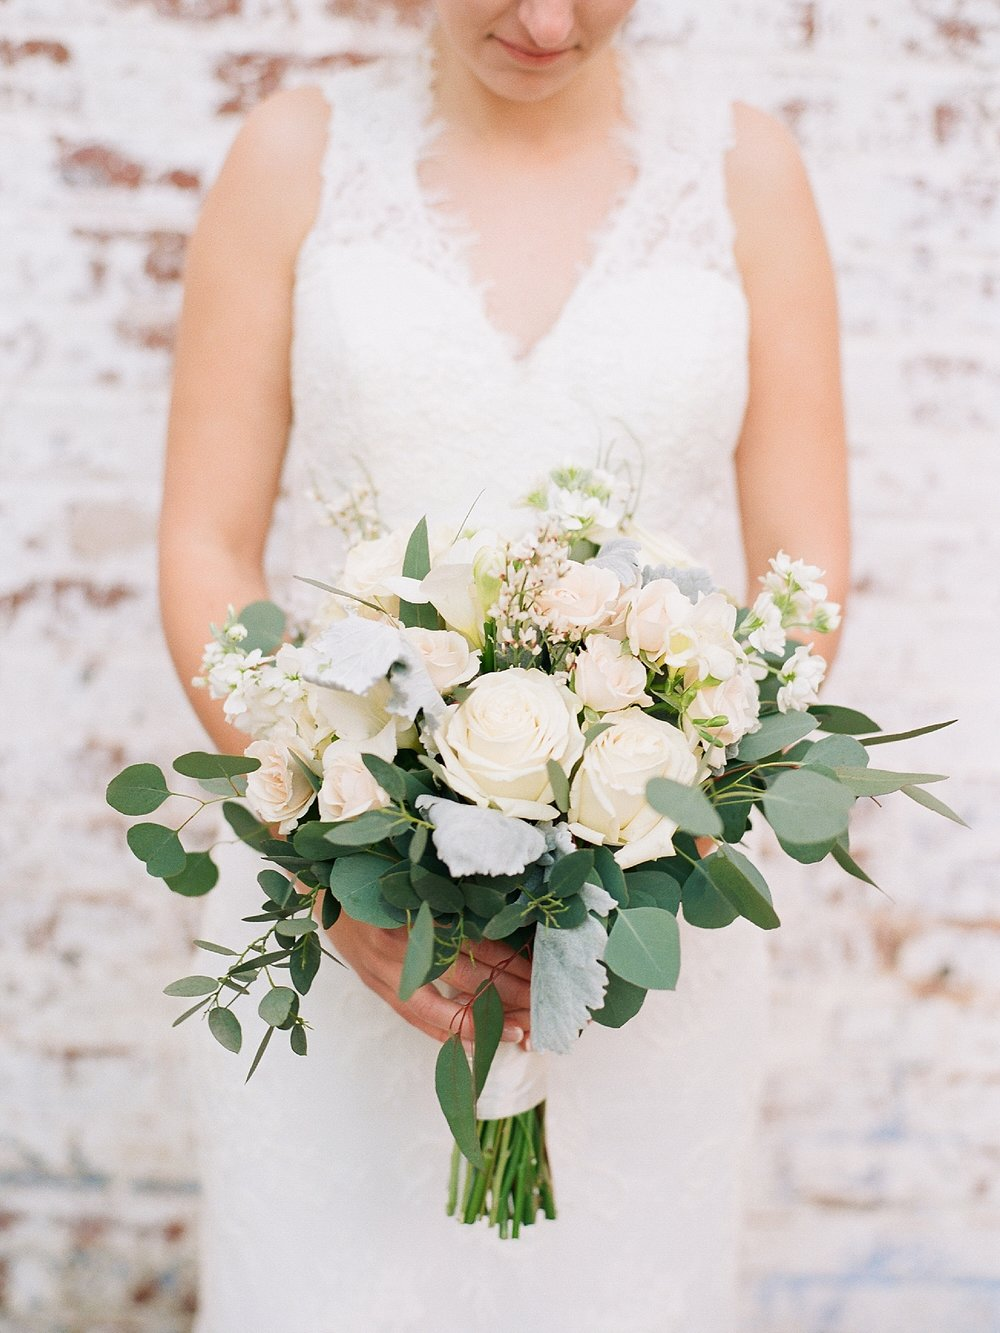 The Engine Room Atlanta Wedding Photographer Christina Pugh 36.jpg